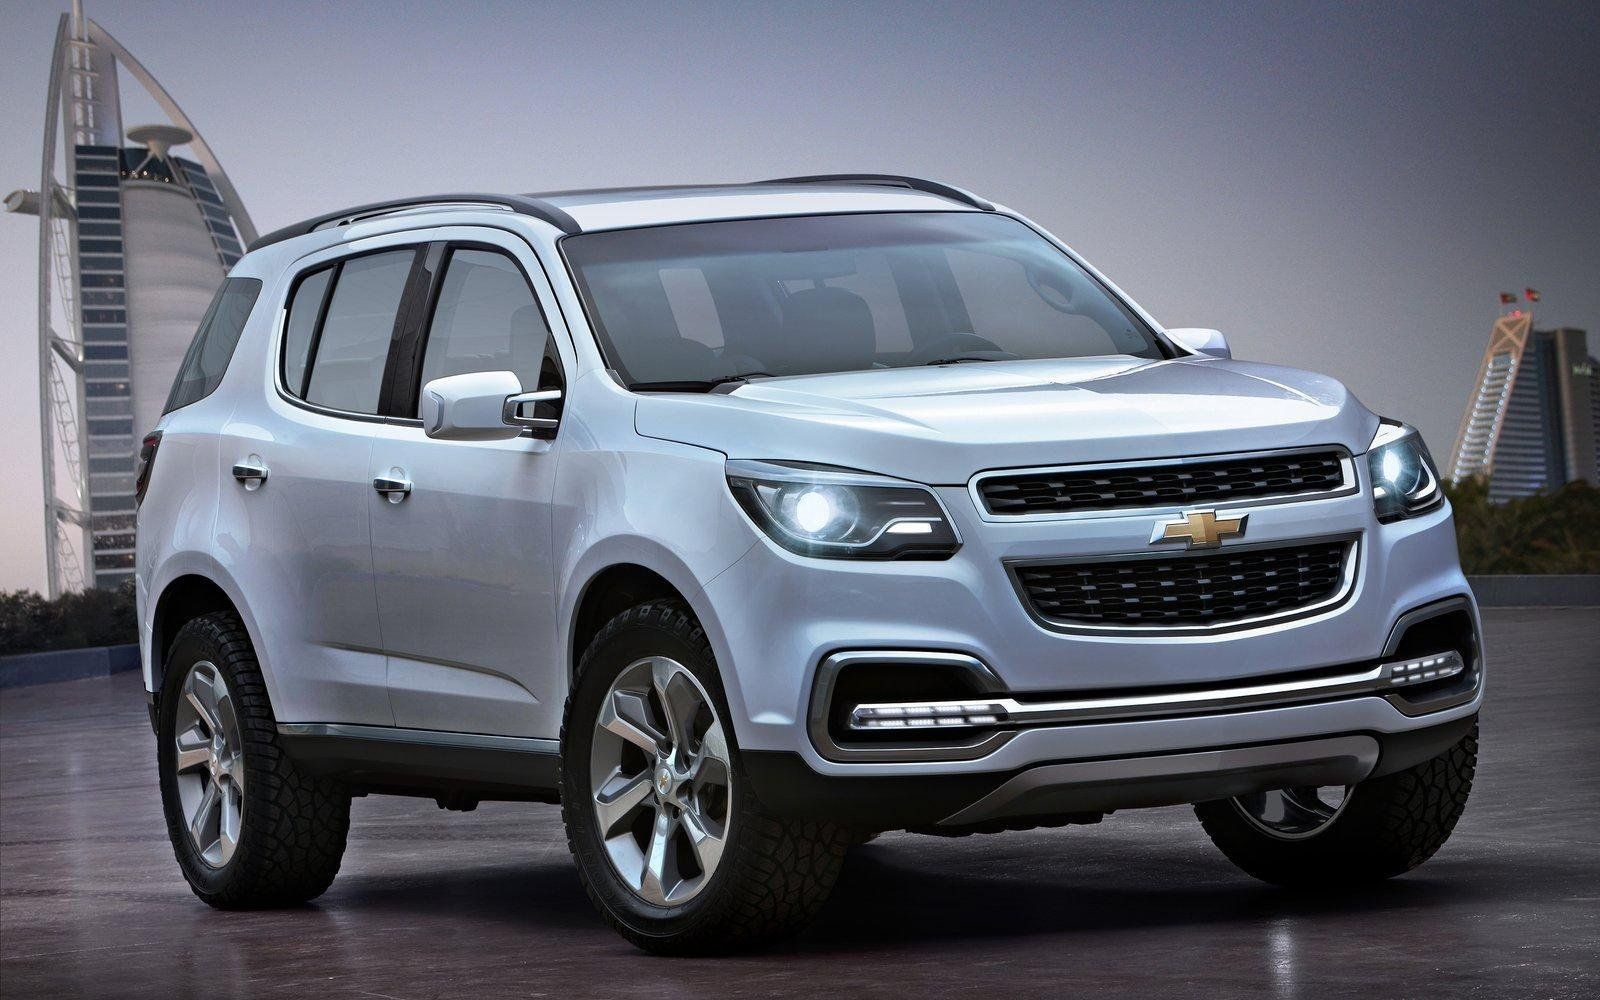 2016 Chevy Trailblazer >> Chevrolet Trailblazer Latest News Reviews Specifications Prices